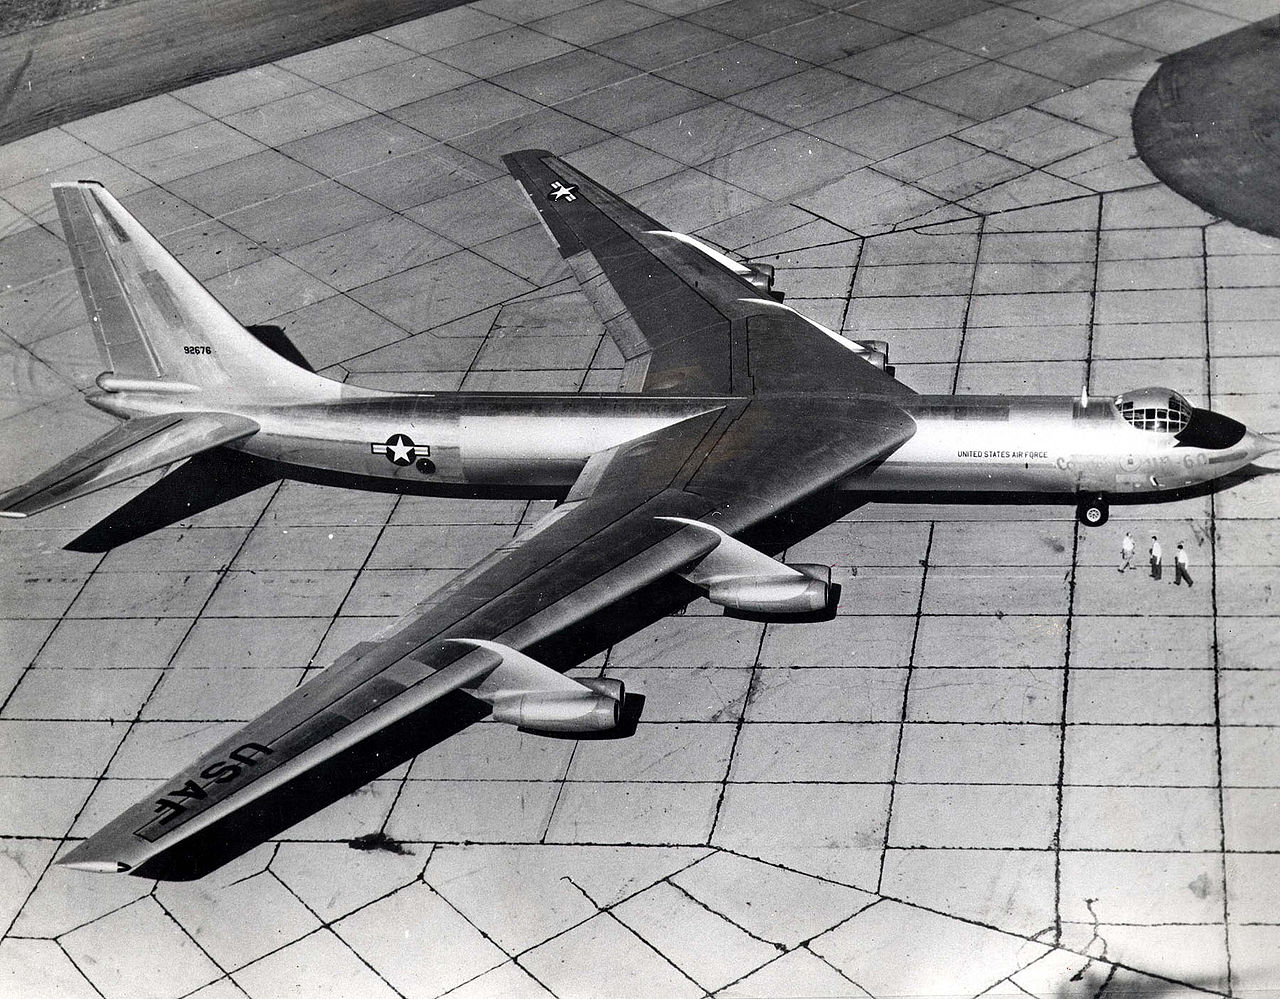 File:Convair YB-60 side top view (SN 49-2676) 061102-F-1234P-002 ...